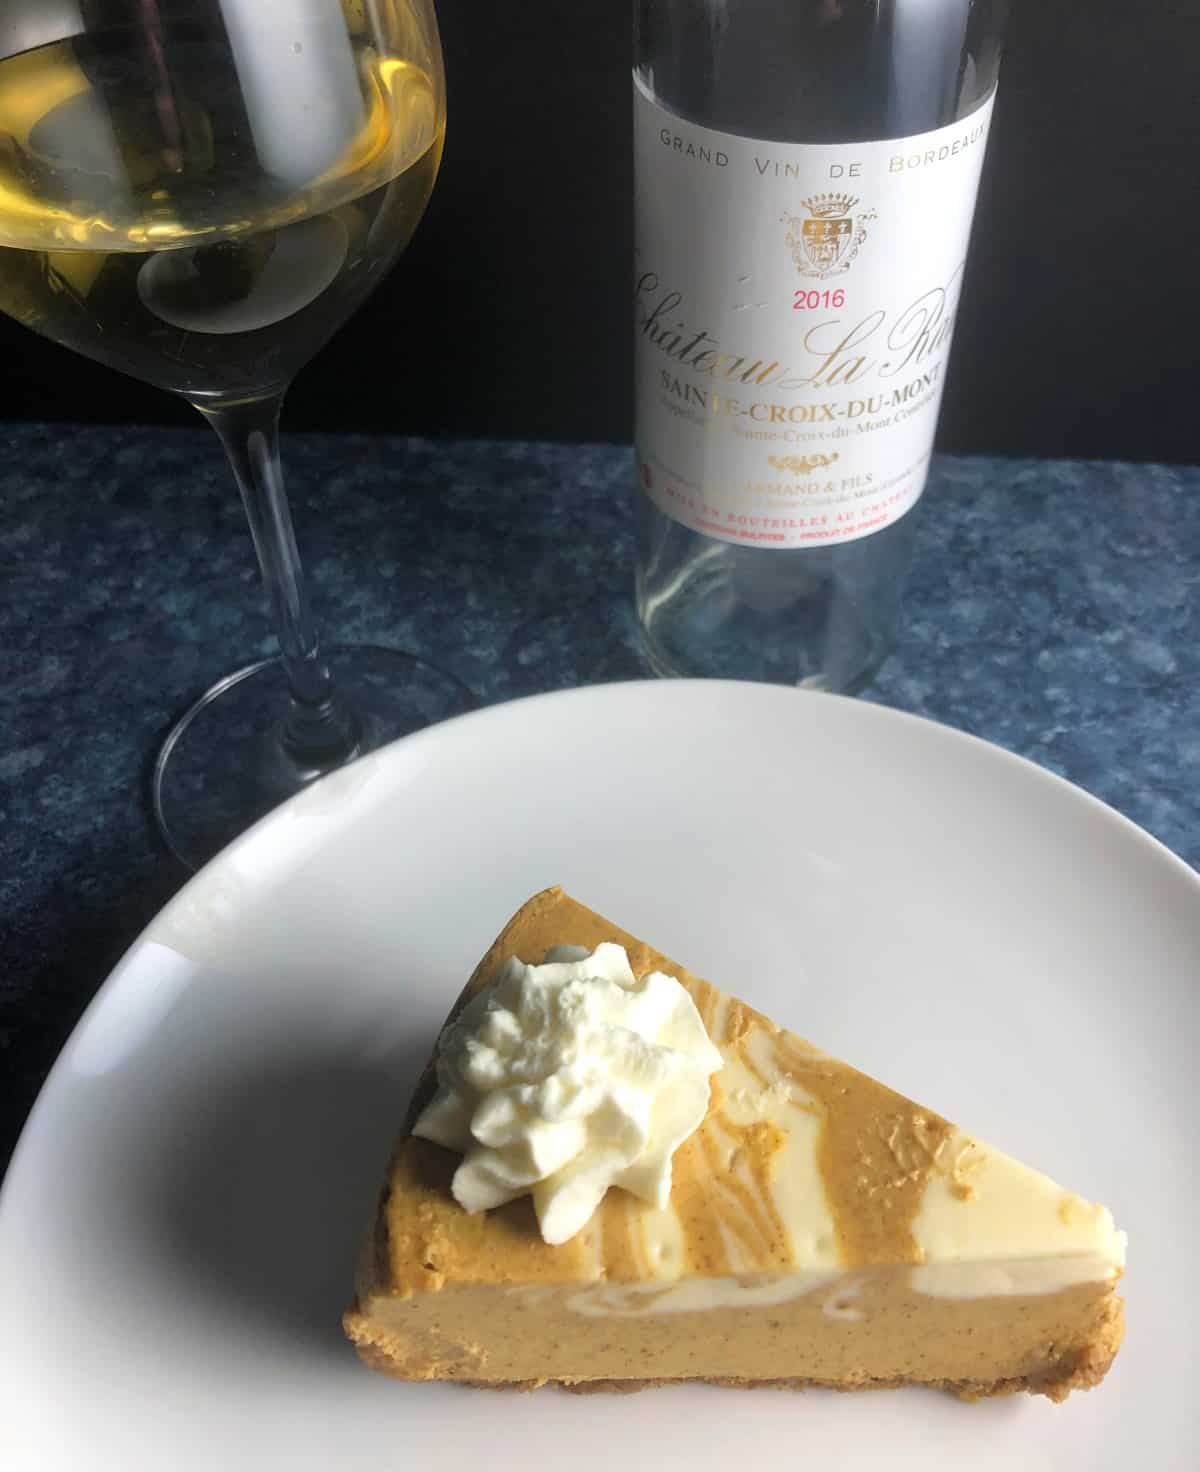 slice of pumpkin cheesecake served with a Sweet Bordeaux.